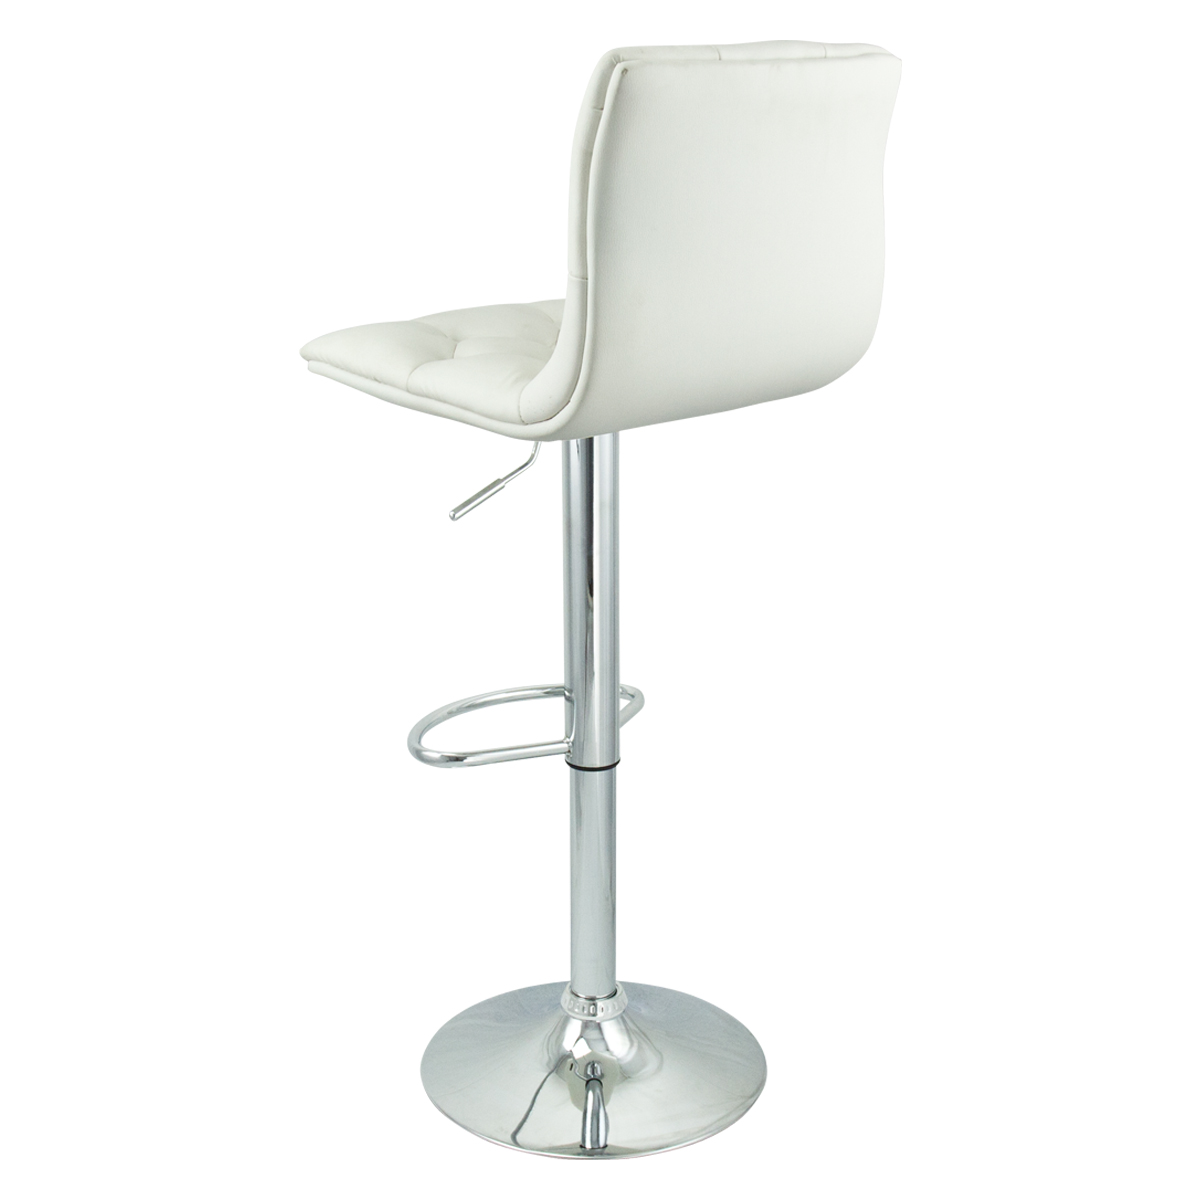 6 Adjustable Hydraulic Barstool Swivel Bar Stool White